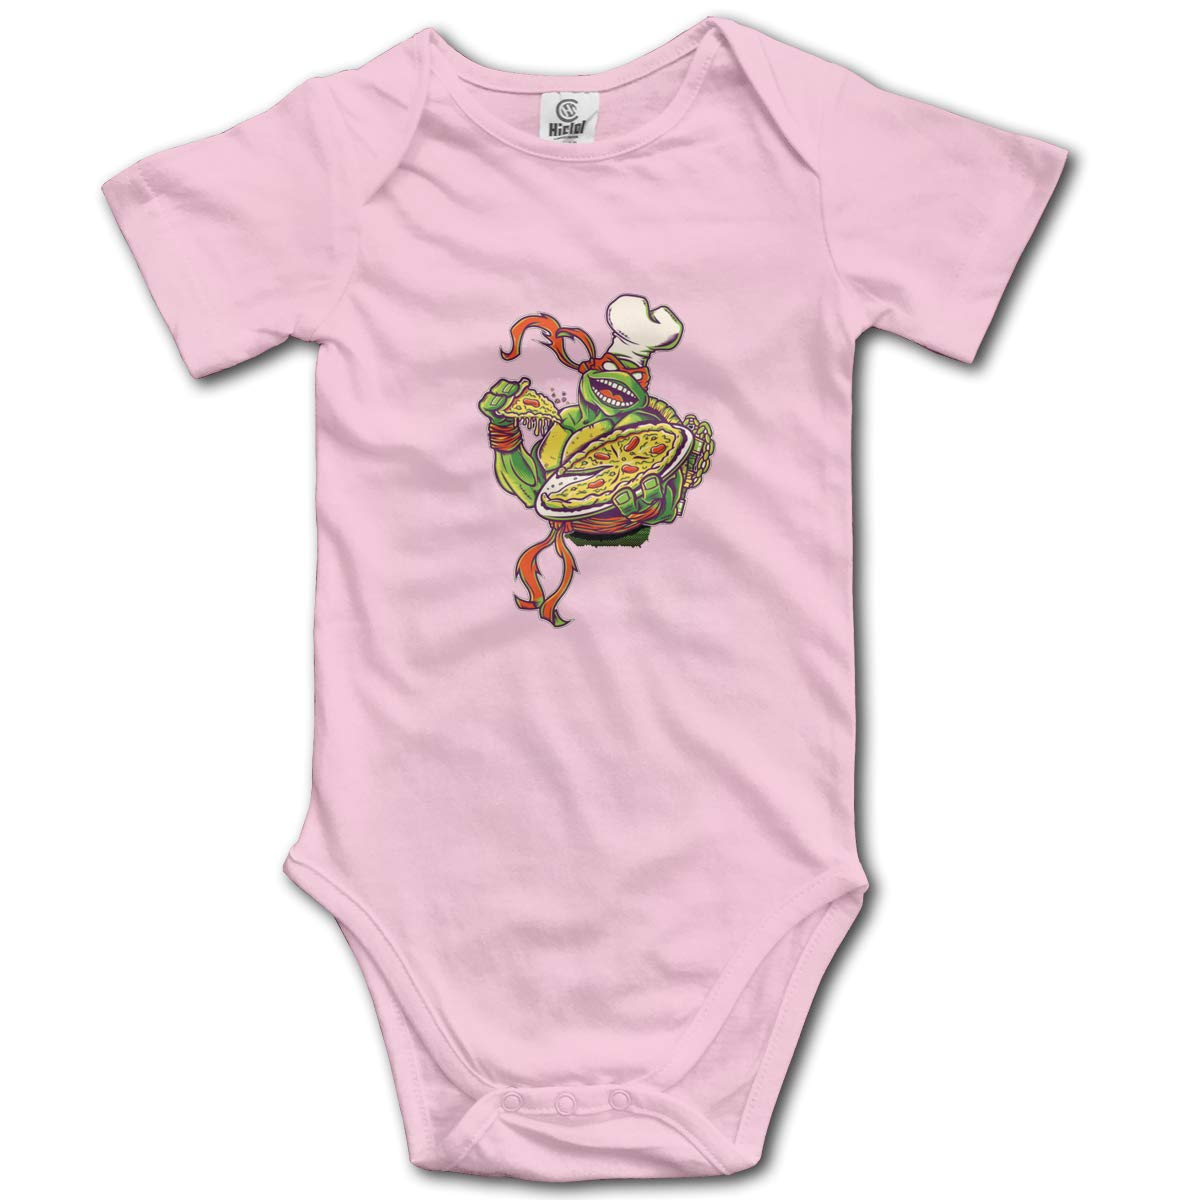 Bodysuits Clothes Onesies Jumpsuits Outfits Black Turtle Pizza Baby Pajamas